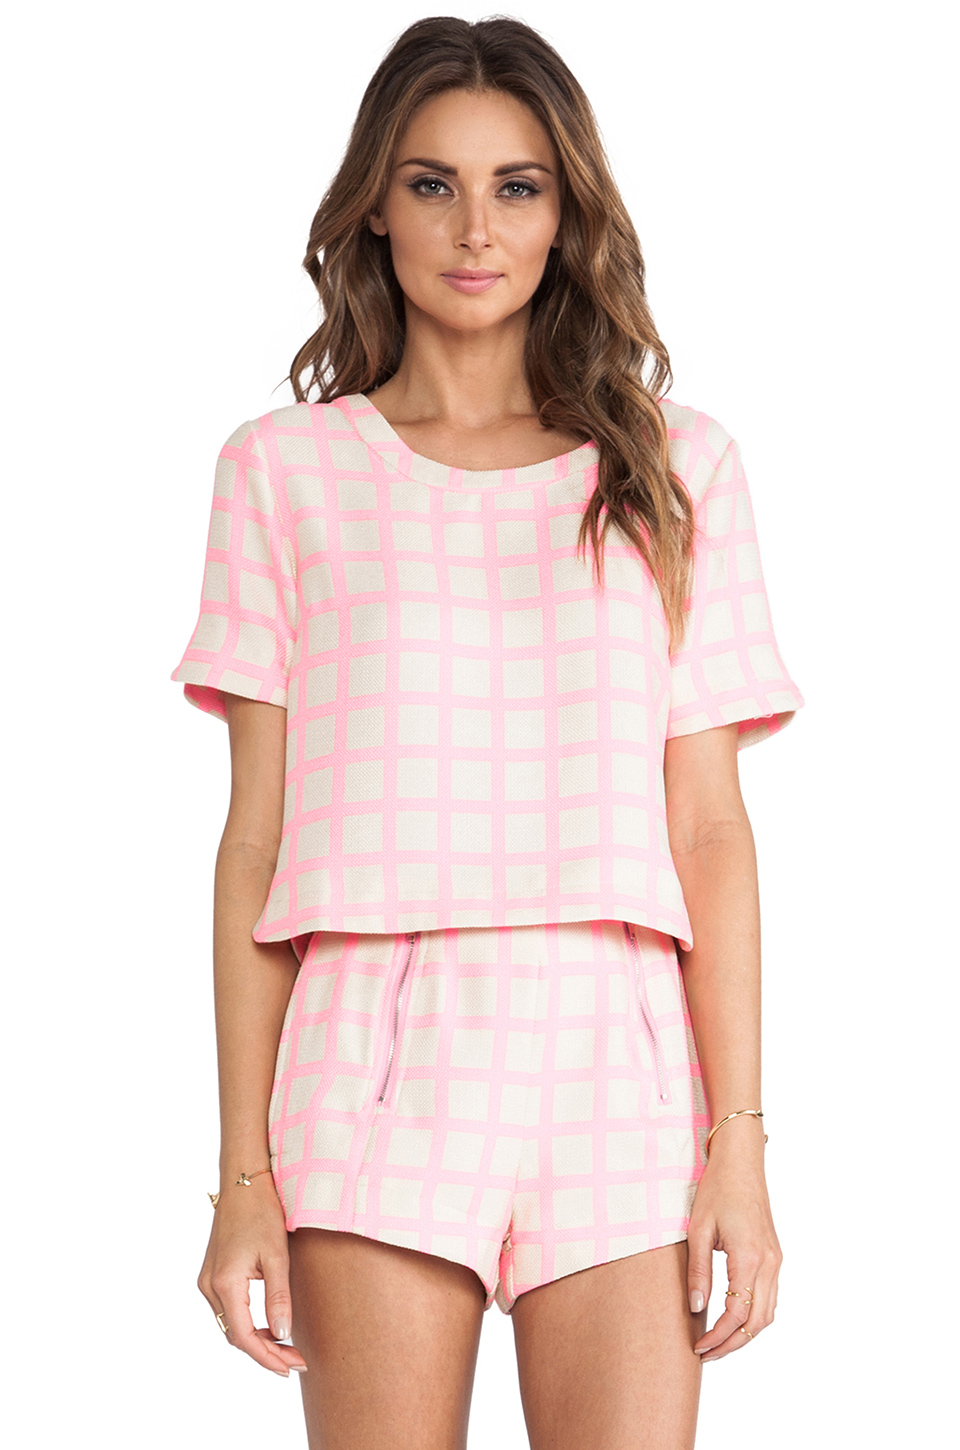 JOA Pink Checked Top in Neon Pink